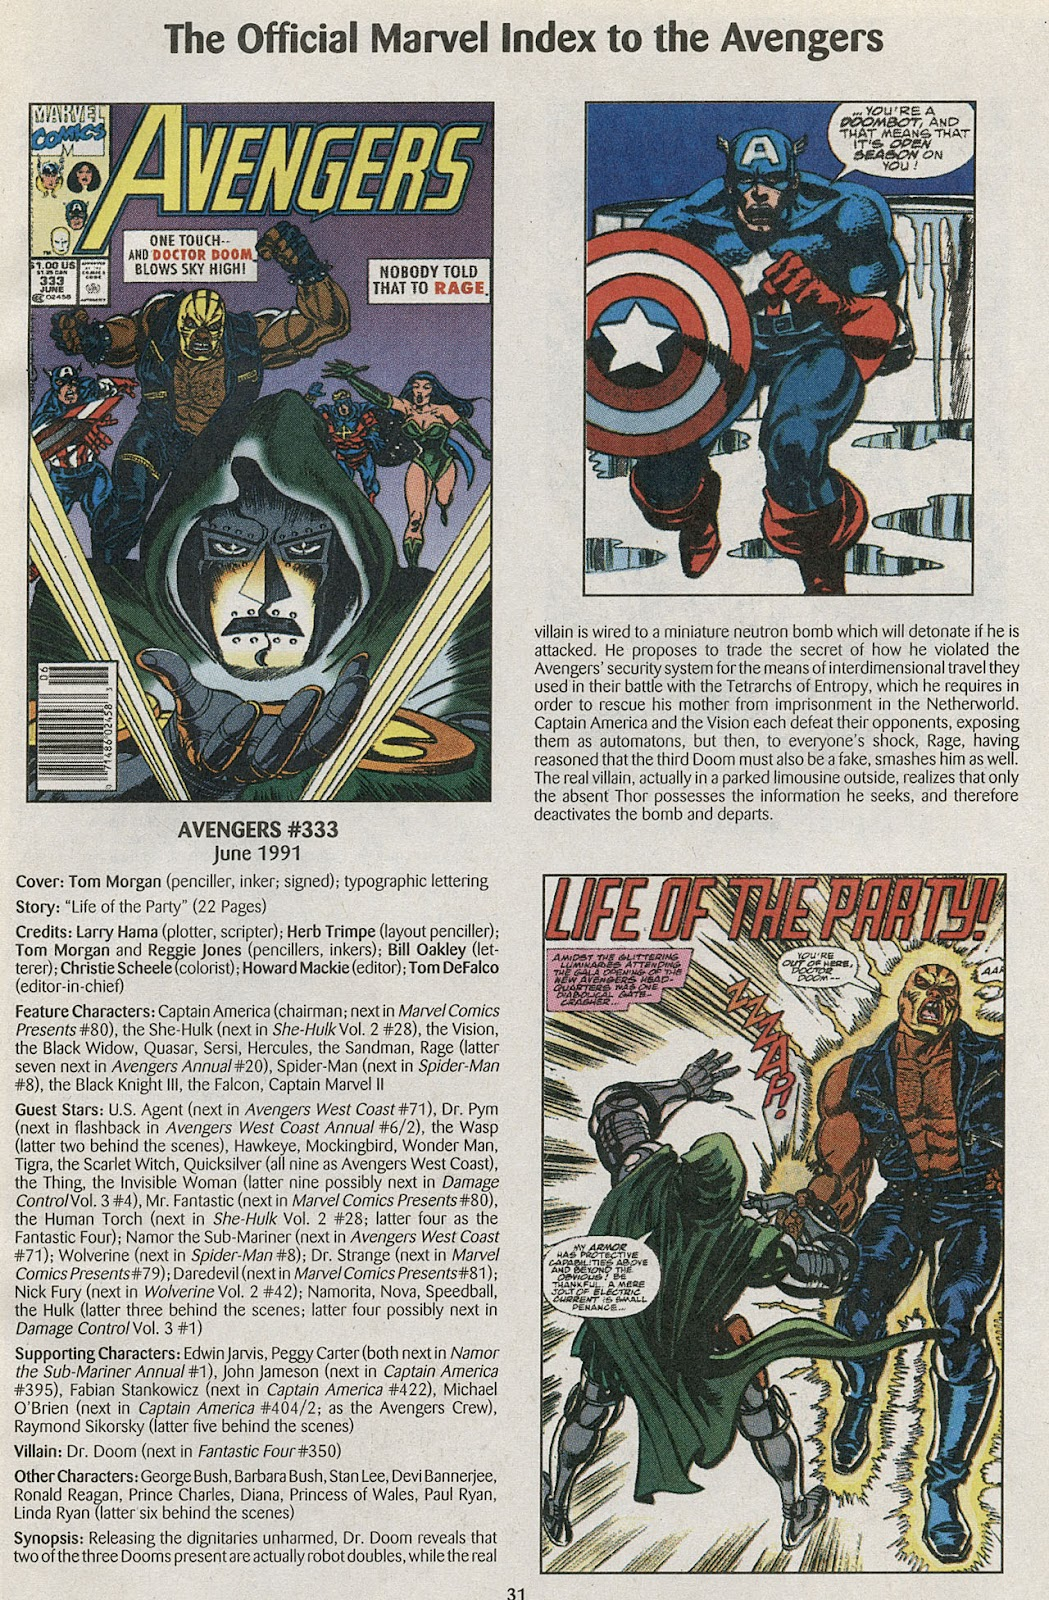 Comic The Official Marvel Index to the Avengers issue 6